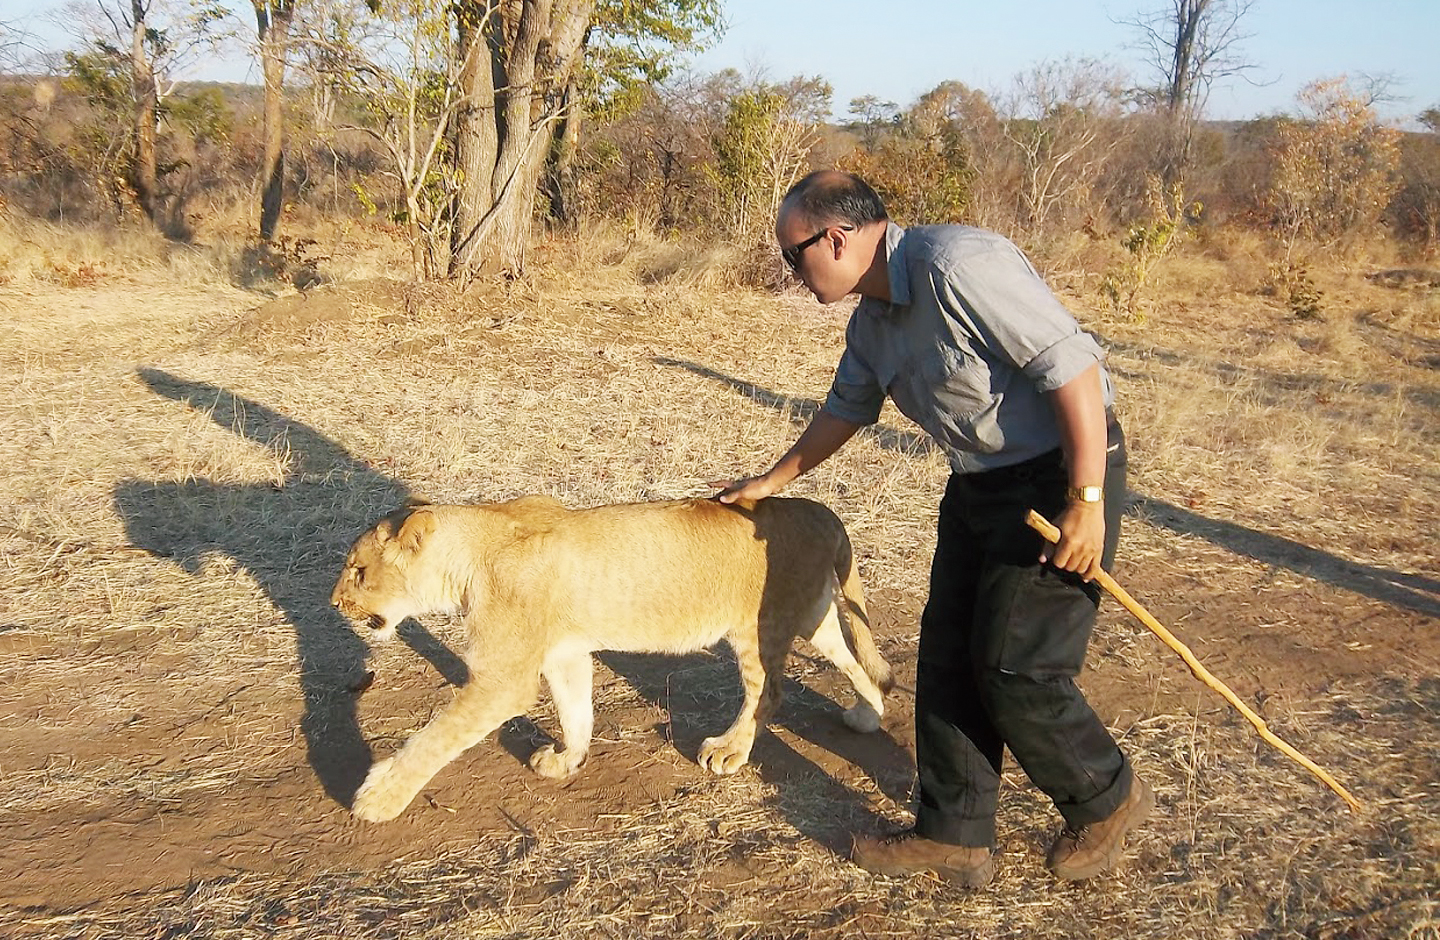 Pal pets a lion at a park in Zimbabwe